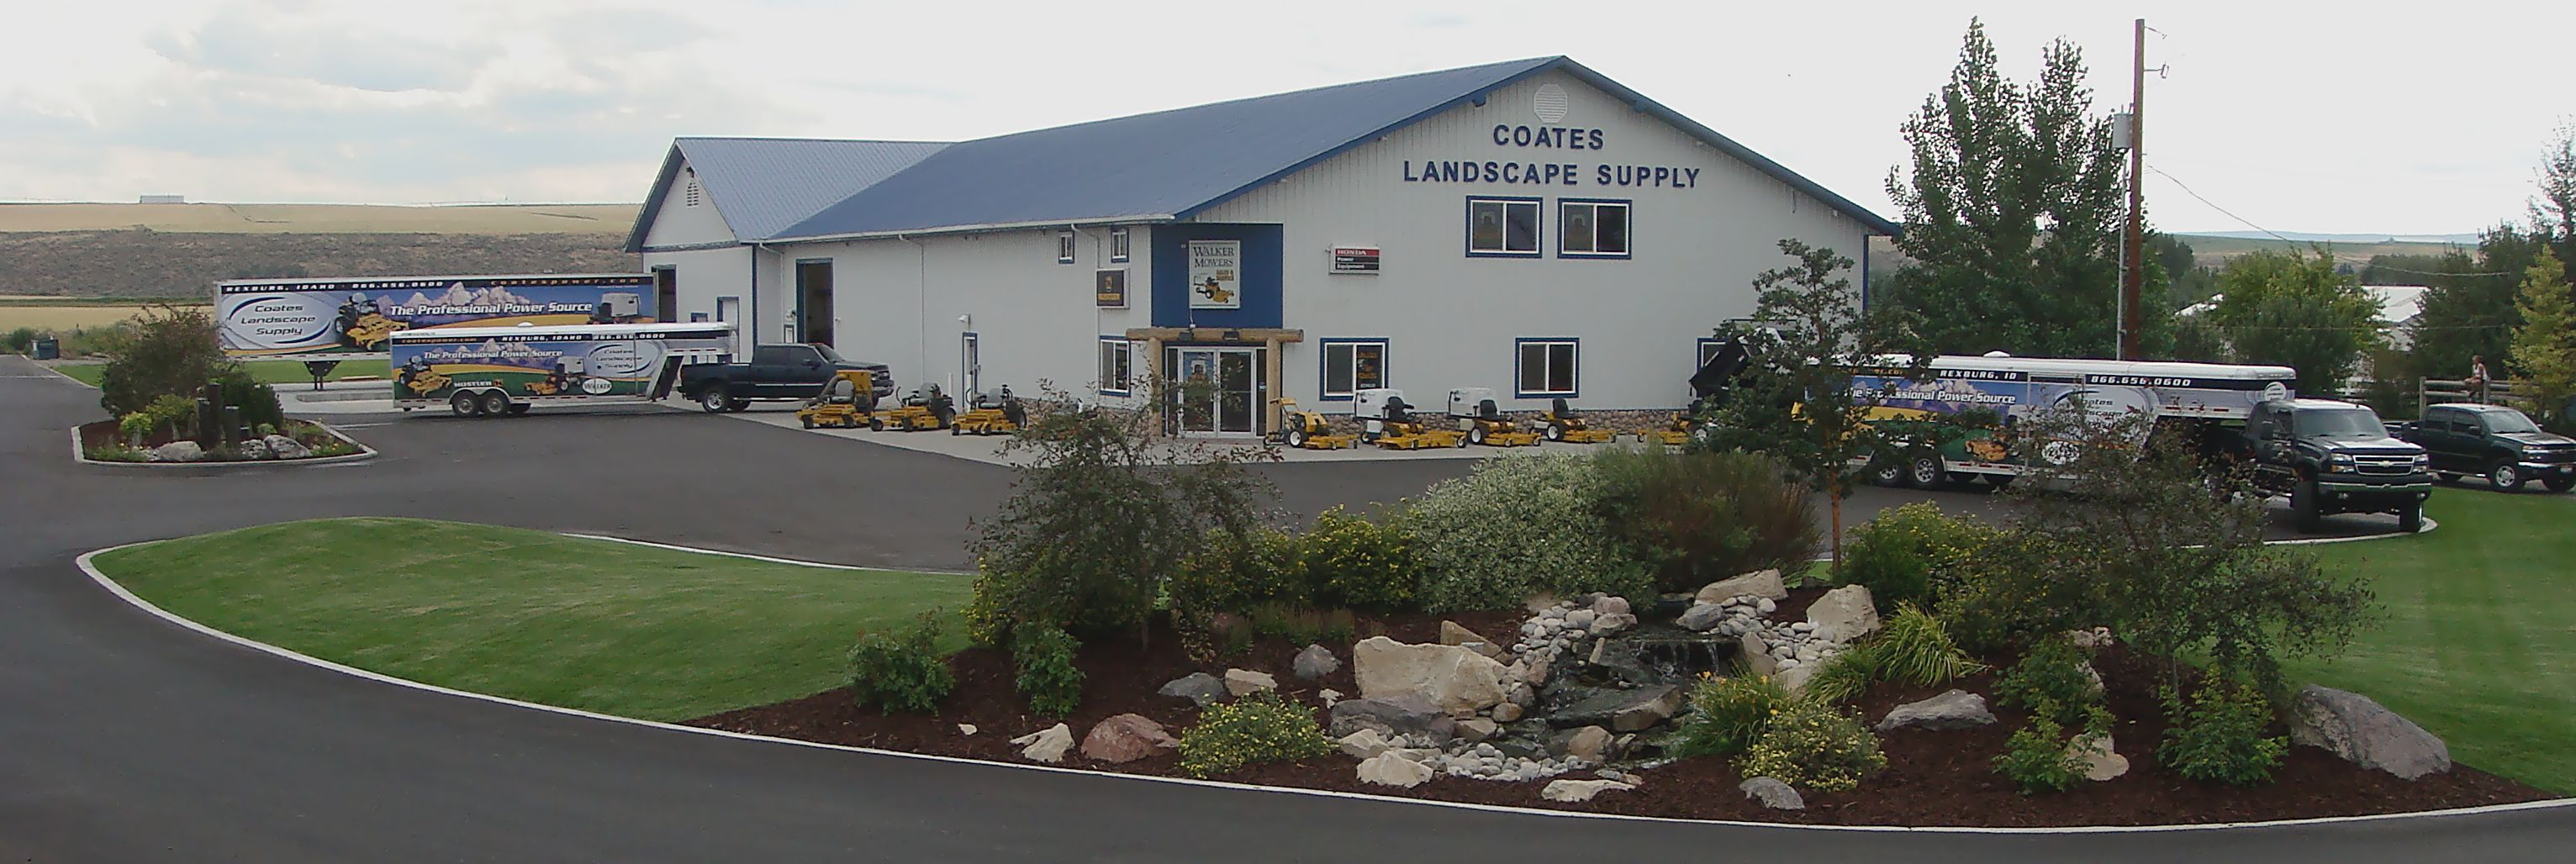 Coates Landscape Supply